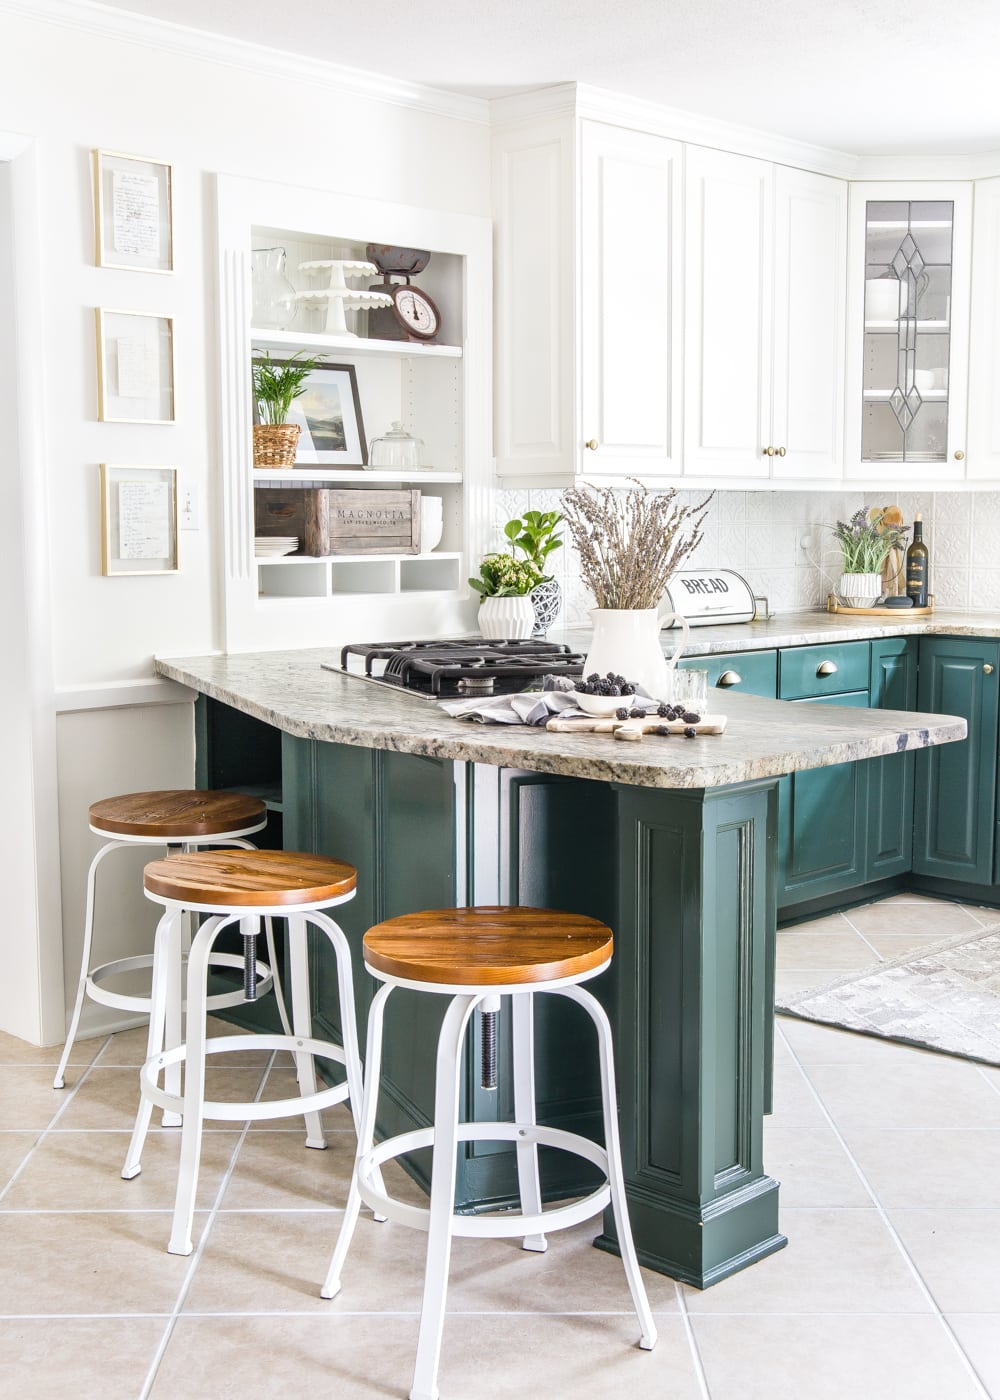 This bright kitchen combines color and style to make a statement